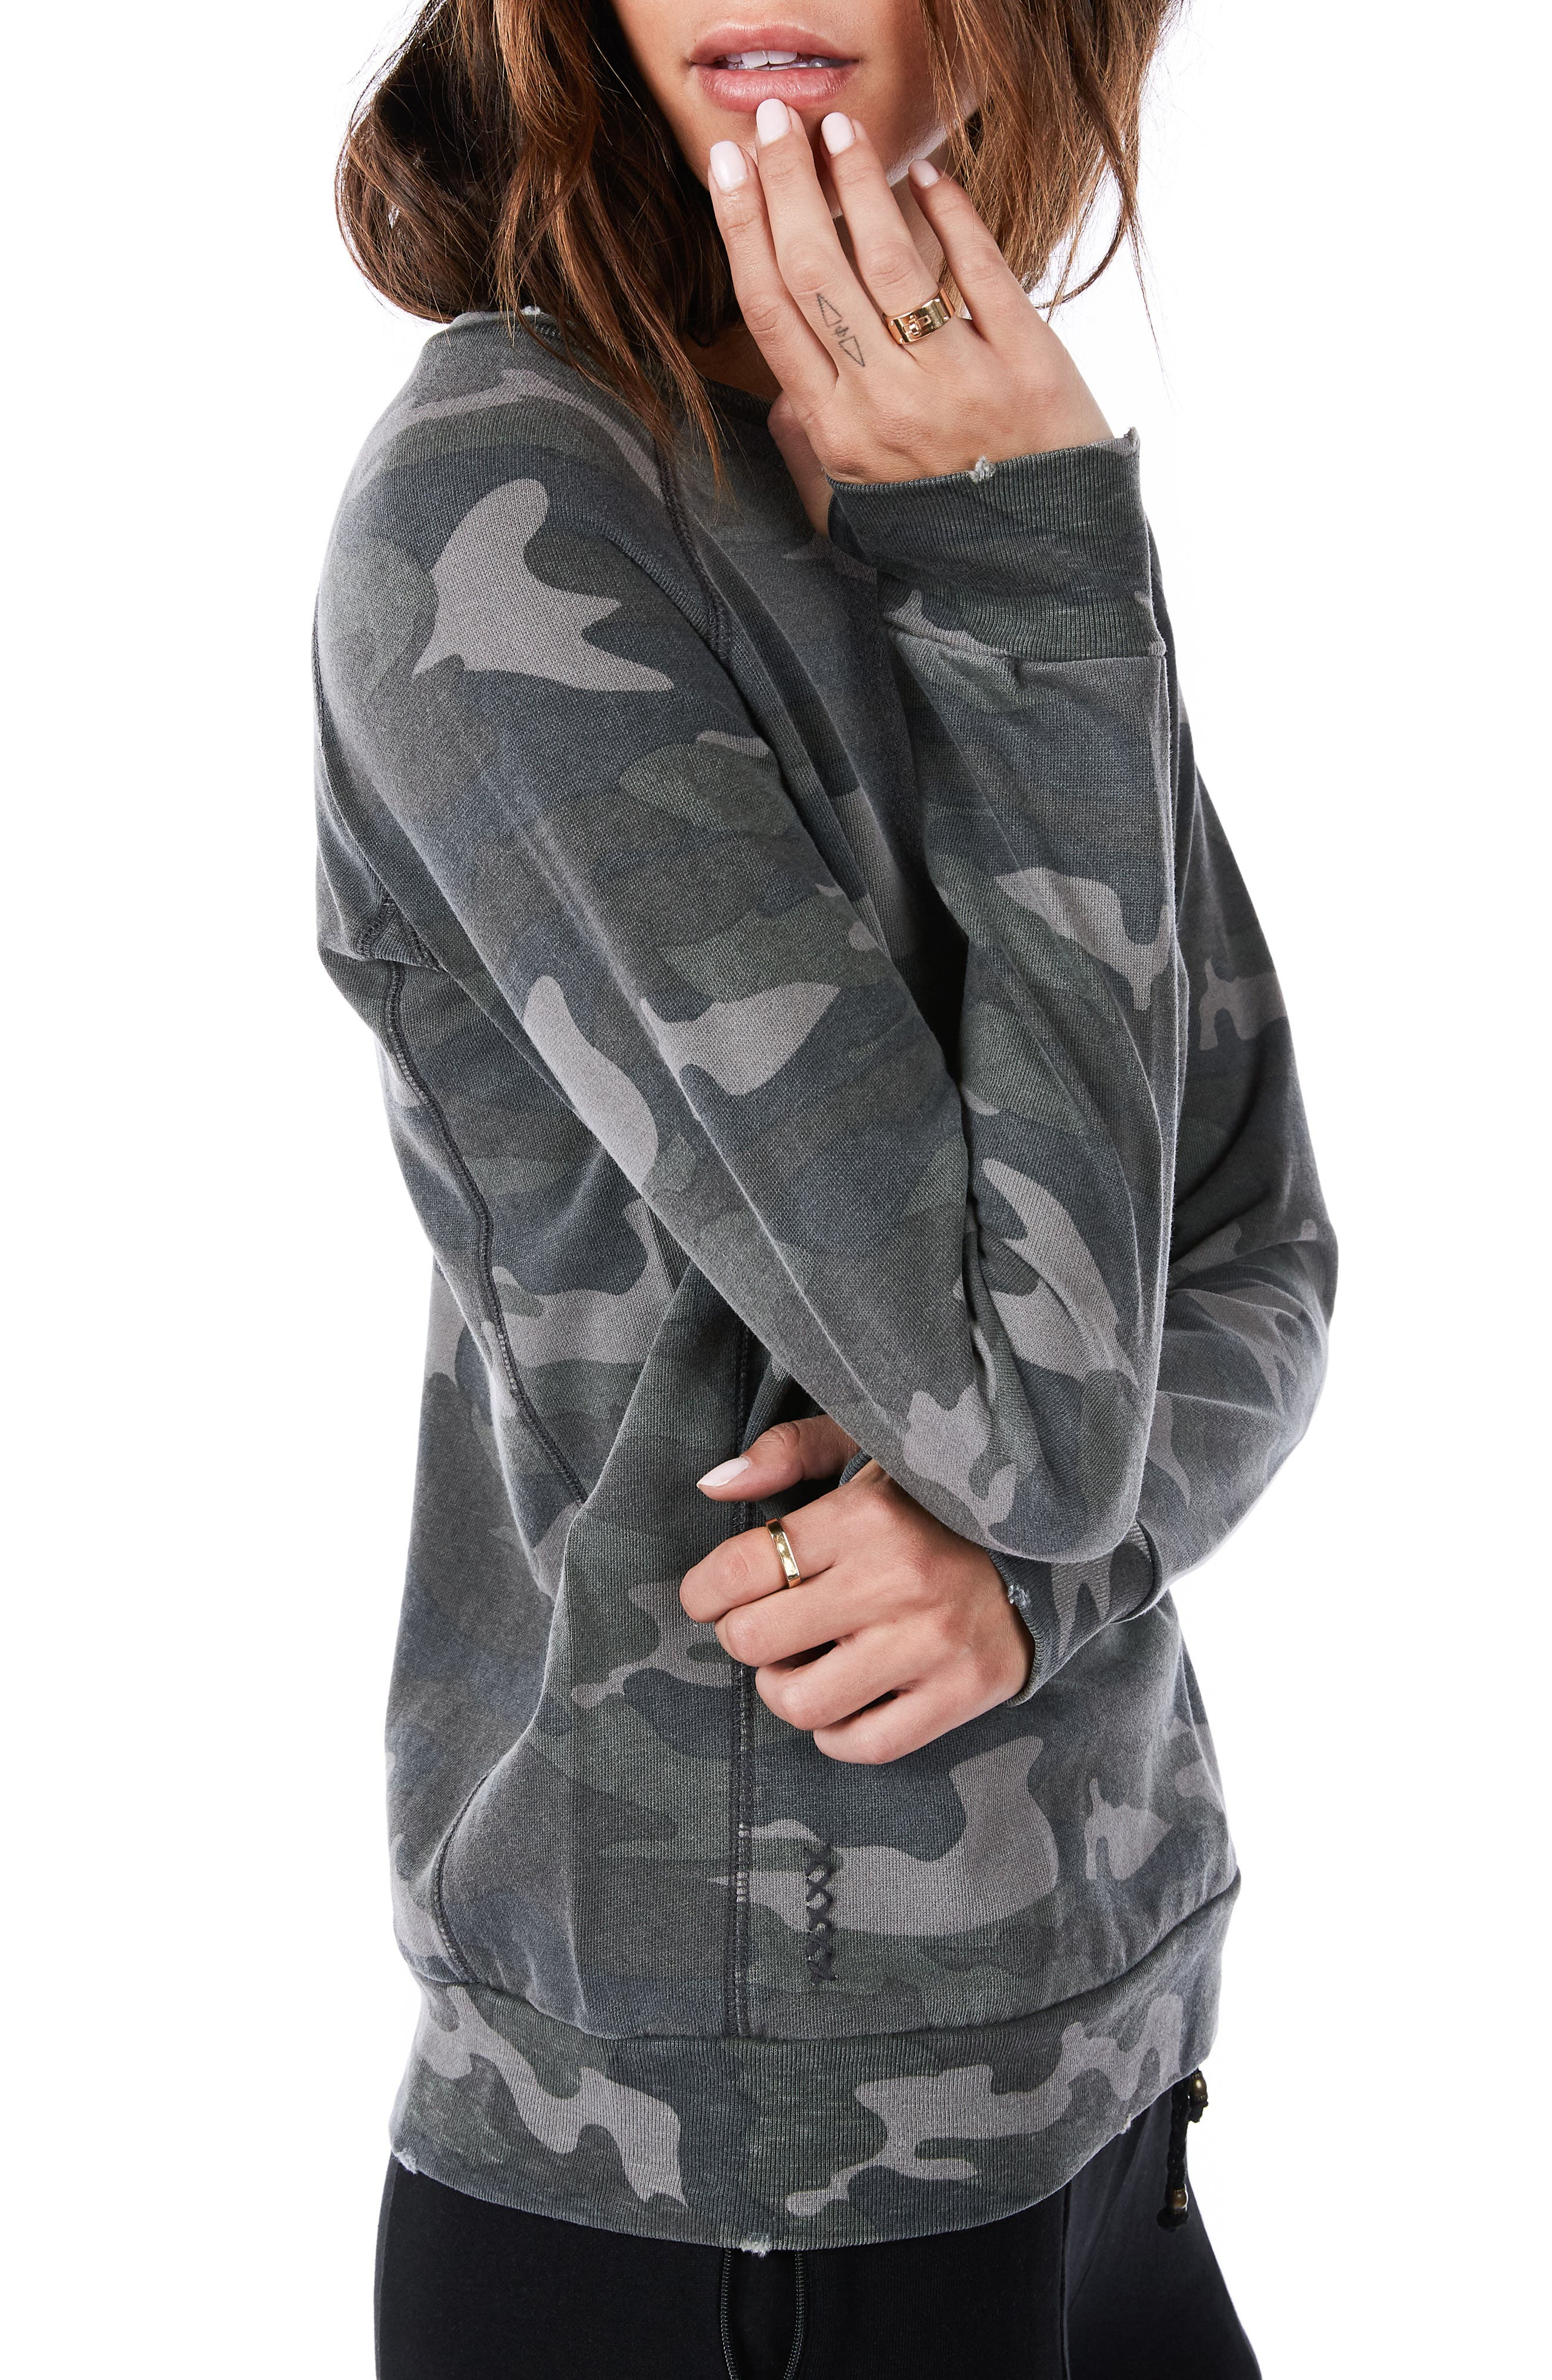 Distressed Camo Sweatshirt,                             Alternate thumbnail 3, color,                             Army Camo